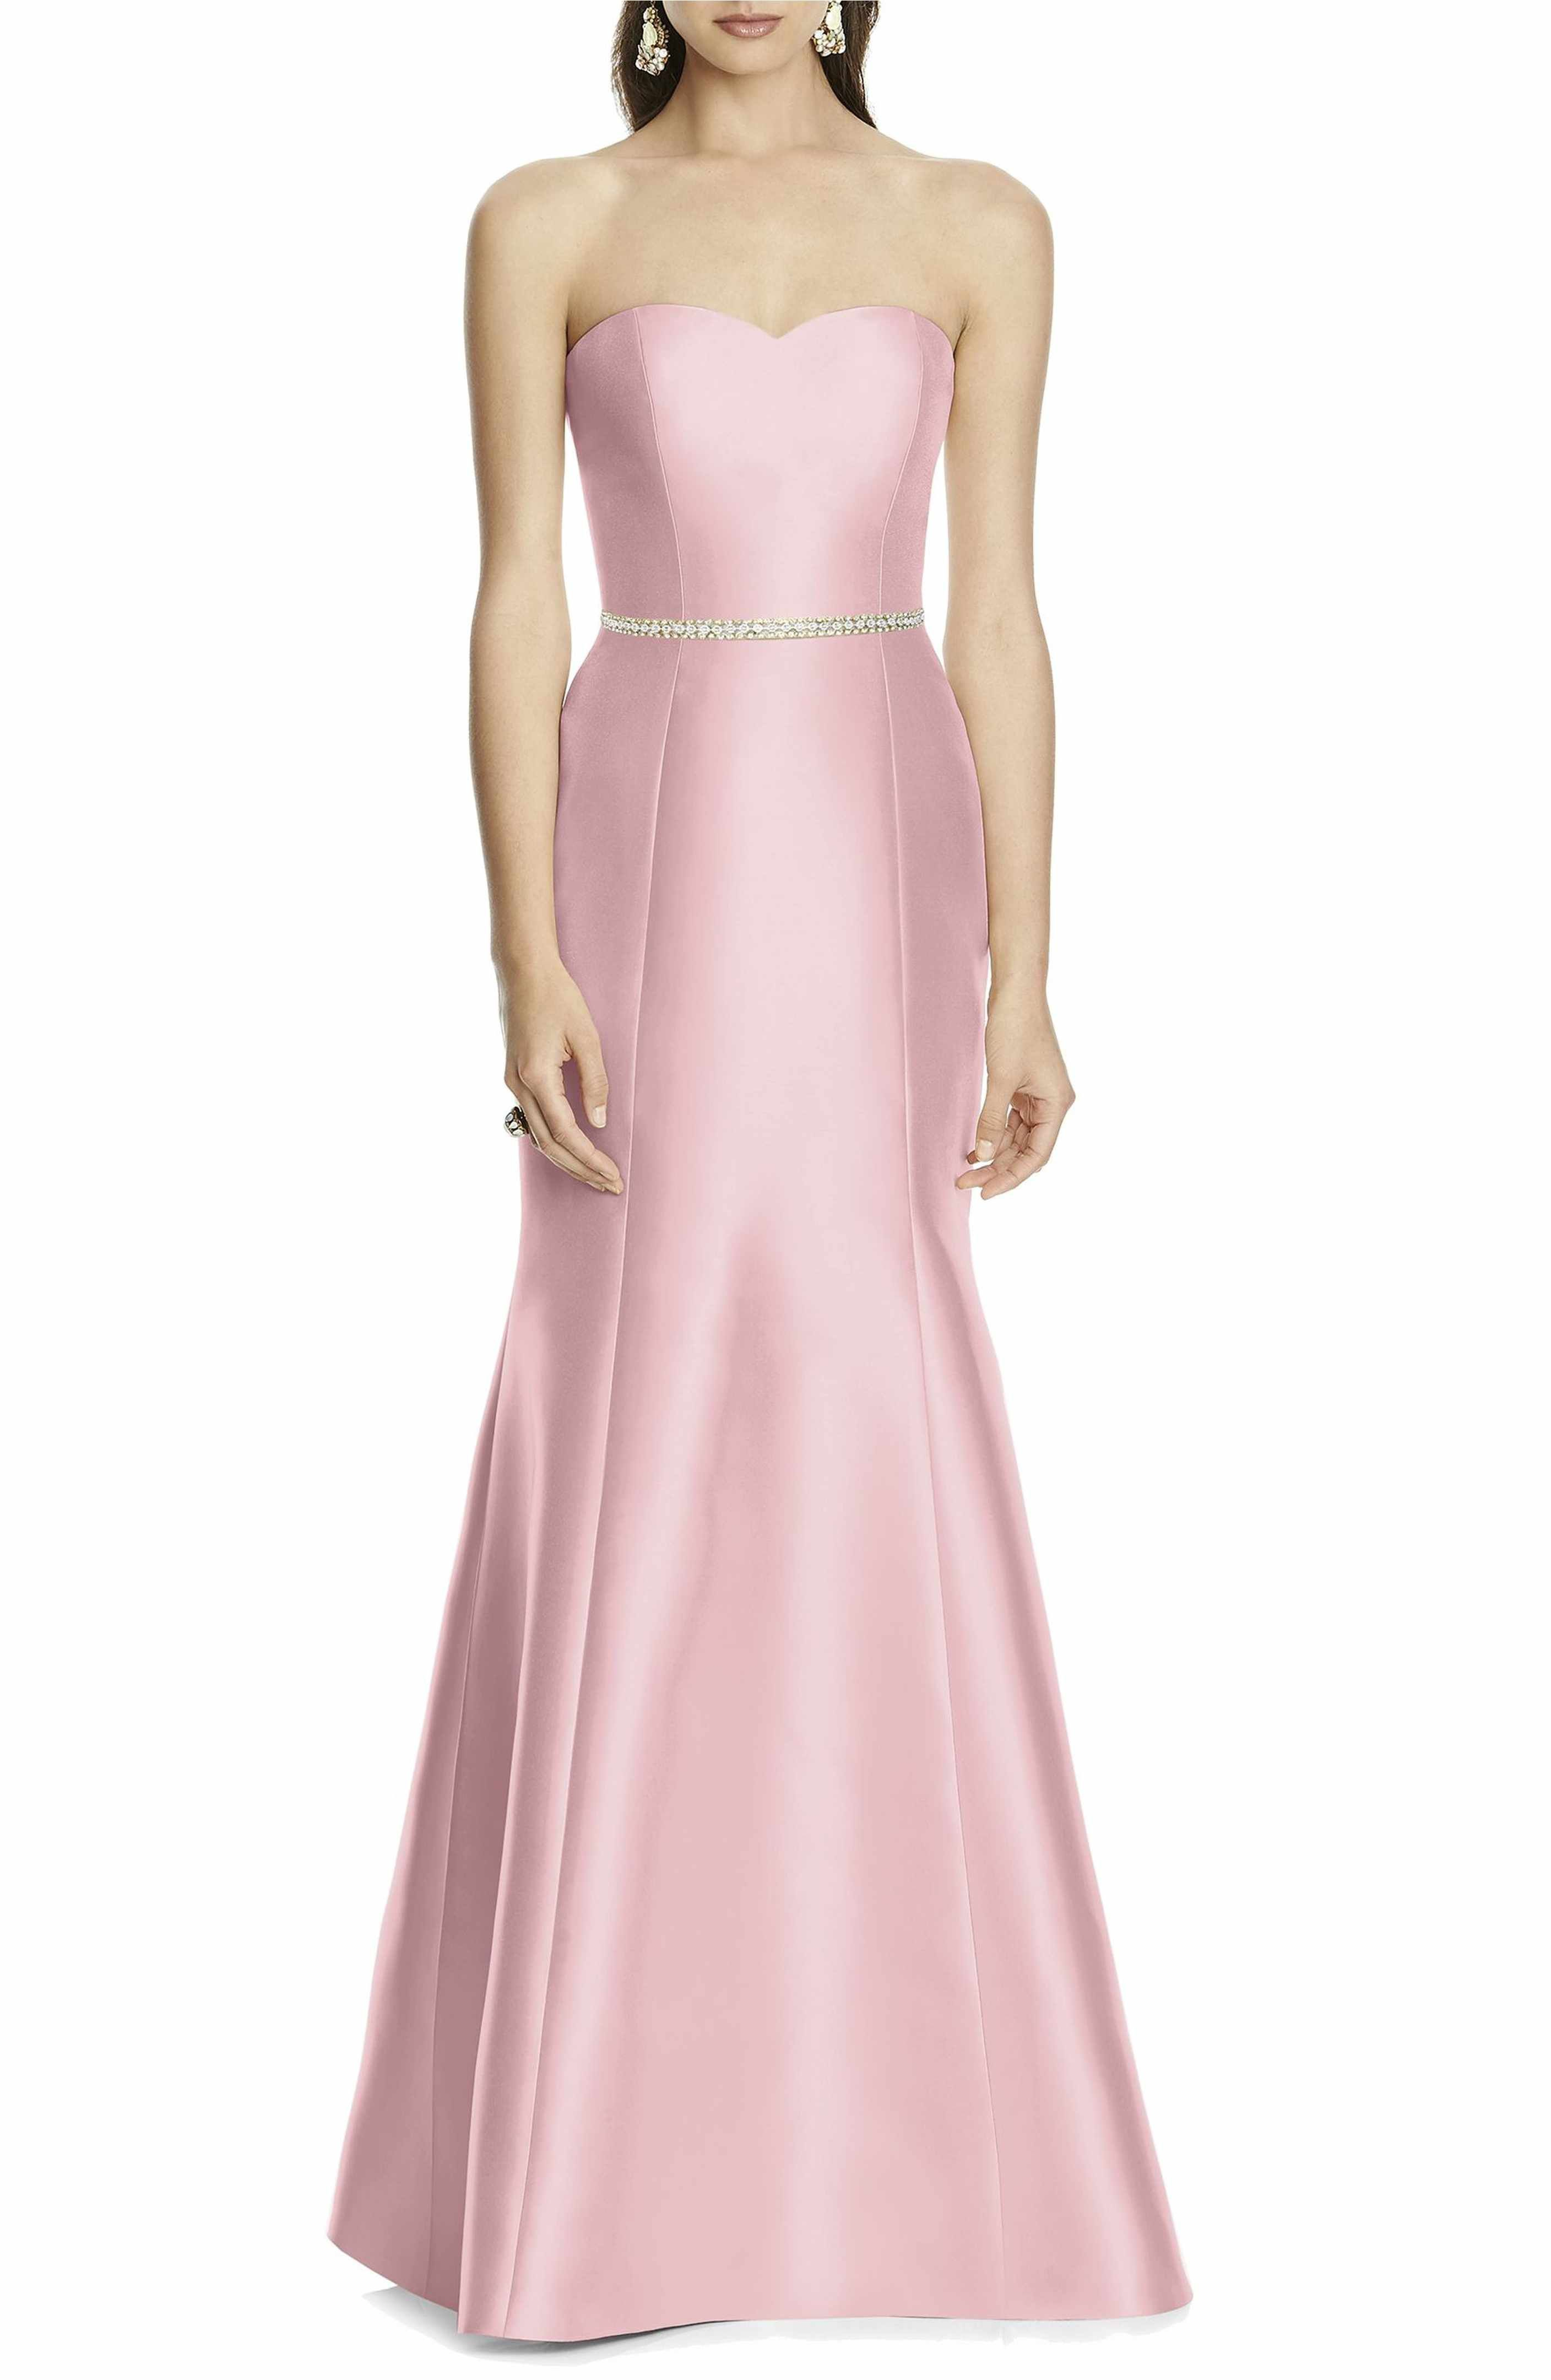 Strapless Sateen Trumpet Gown | Alfred sung, Trumpets and Gowns